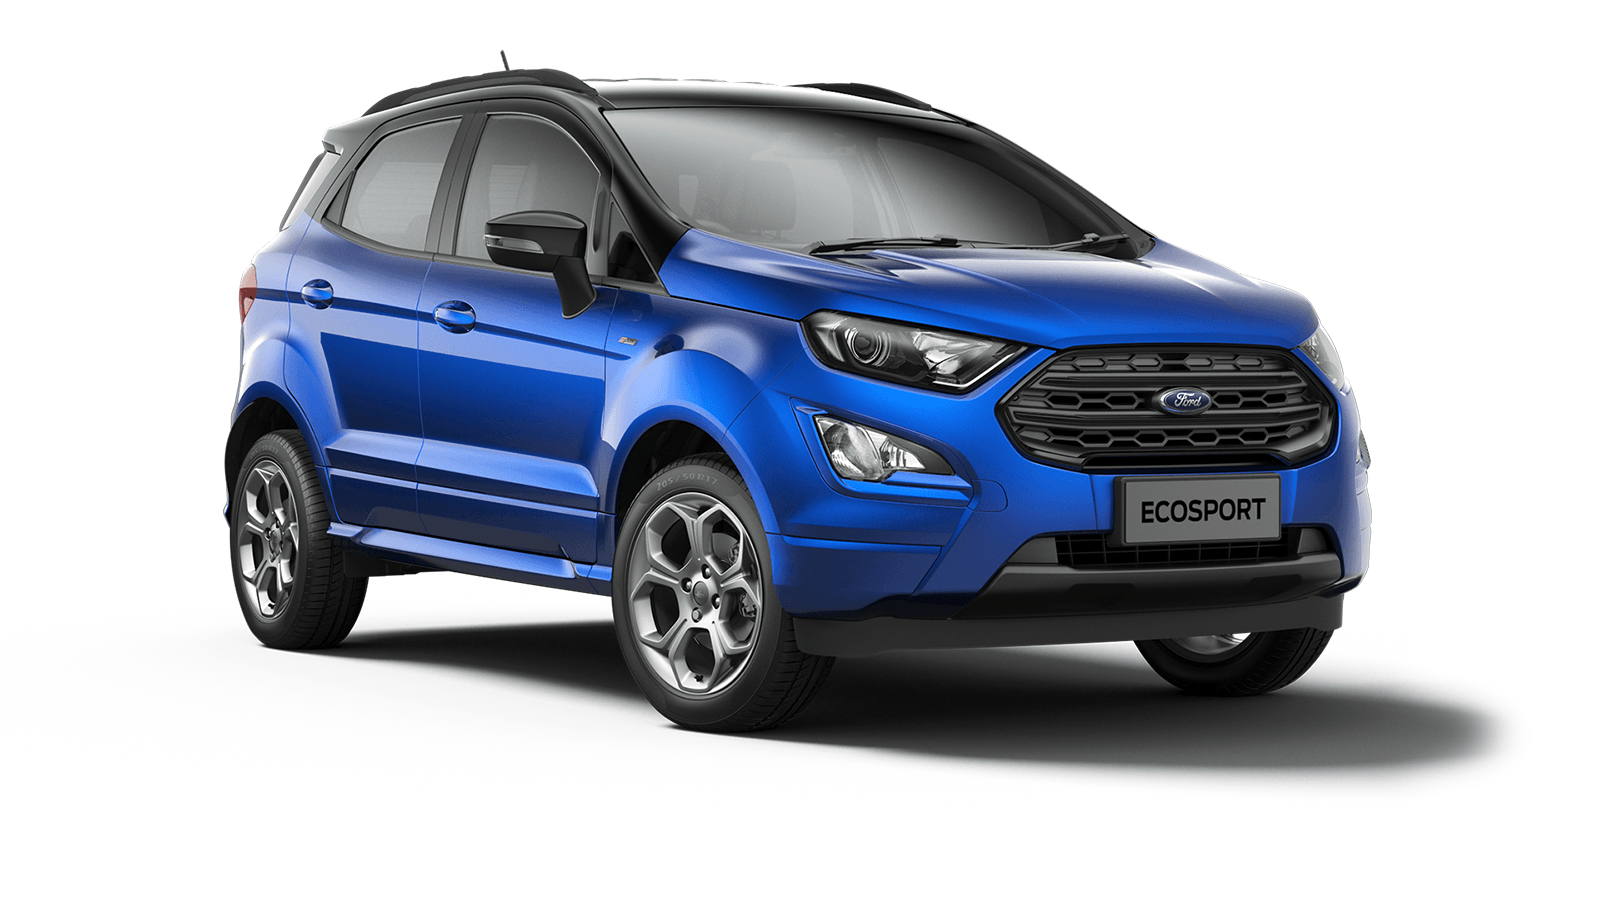 https://www.dealerinternet.co.uk/images/B515%20ECOSPORT/2019/5%20Door/ST-Line/Lightning-Blue.png